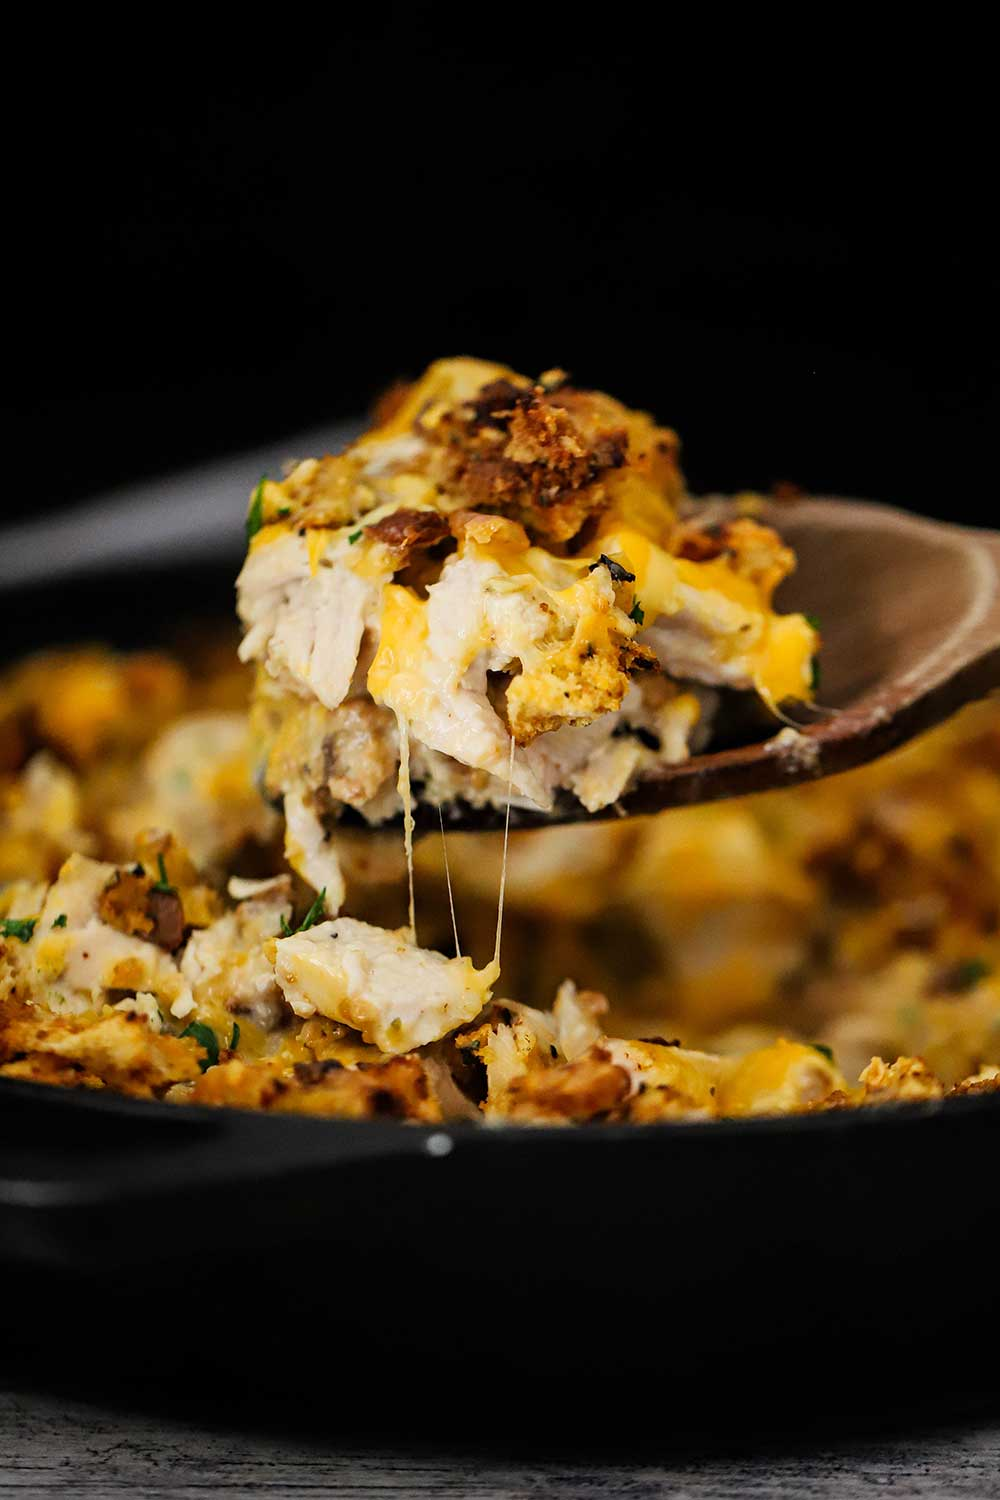 A large wooden spoon lifting gooey cheesy turkey and stuffing casserole from a cast-iron skillet.